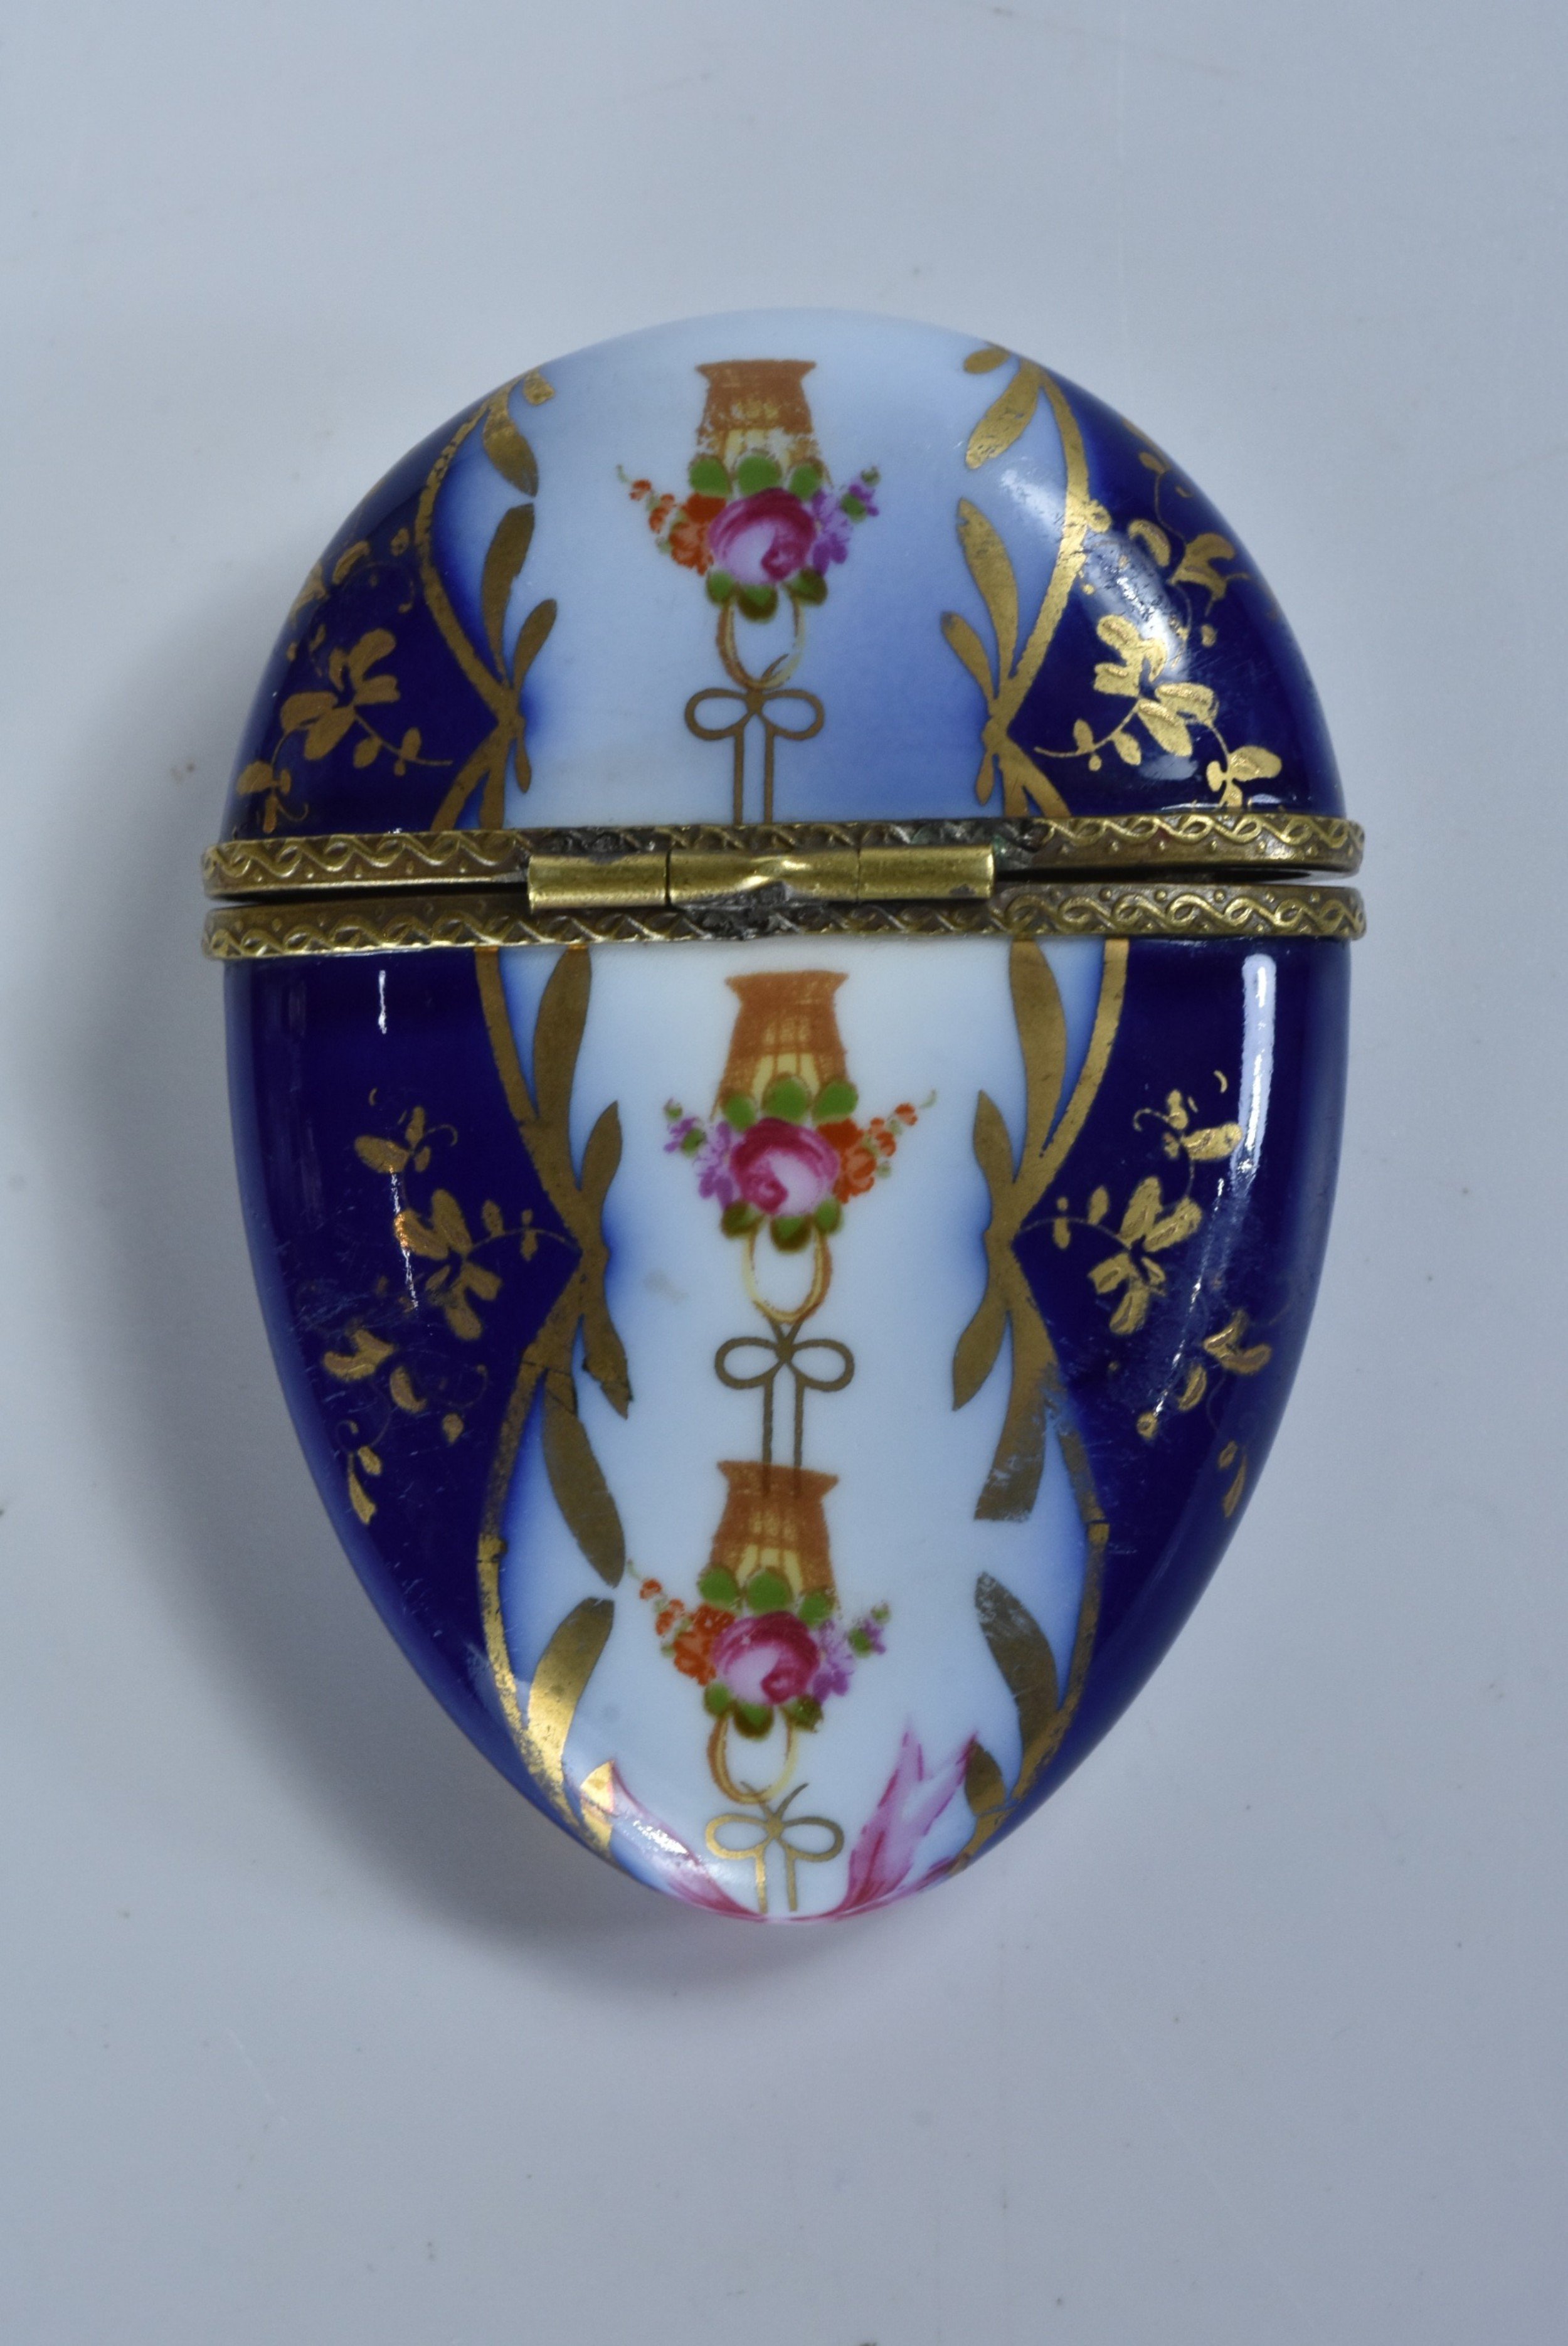 19thcentury flat eggshaped trinket box